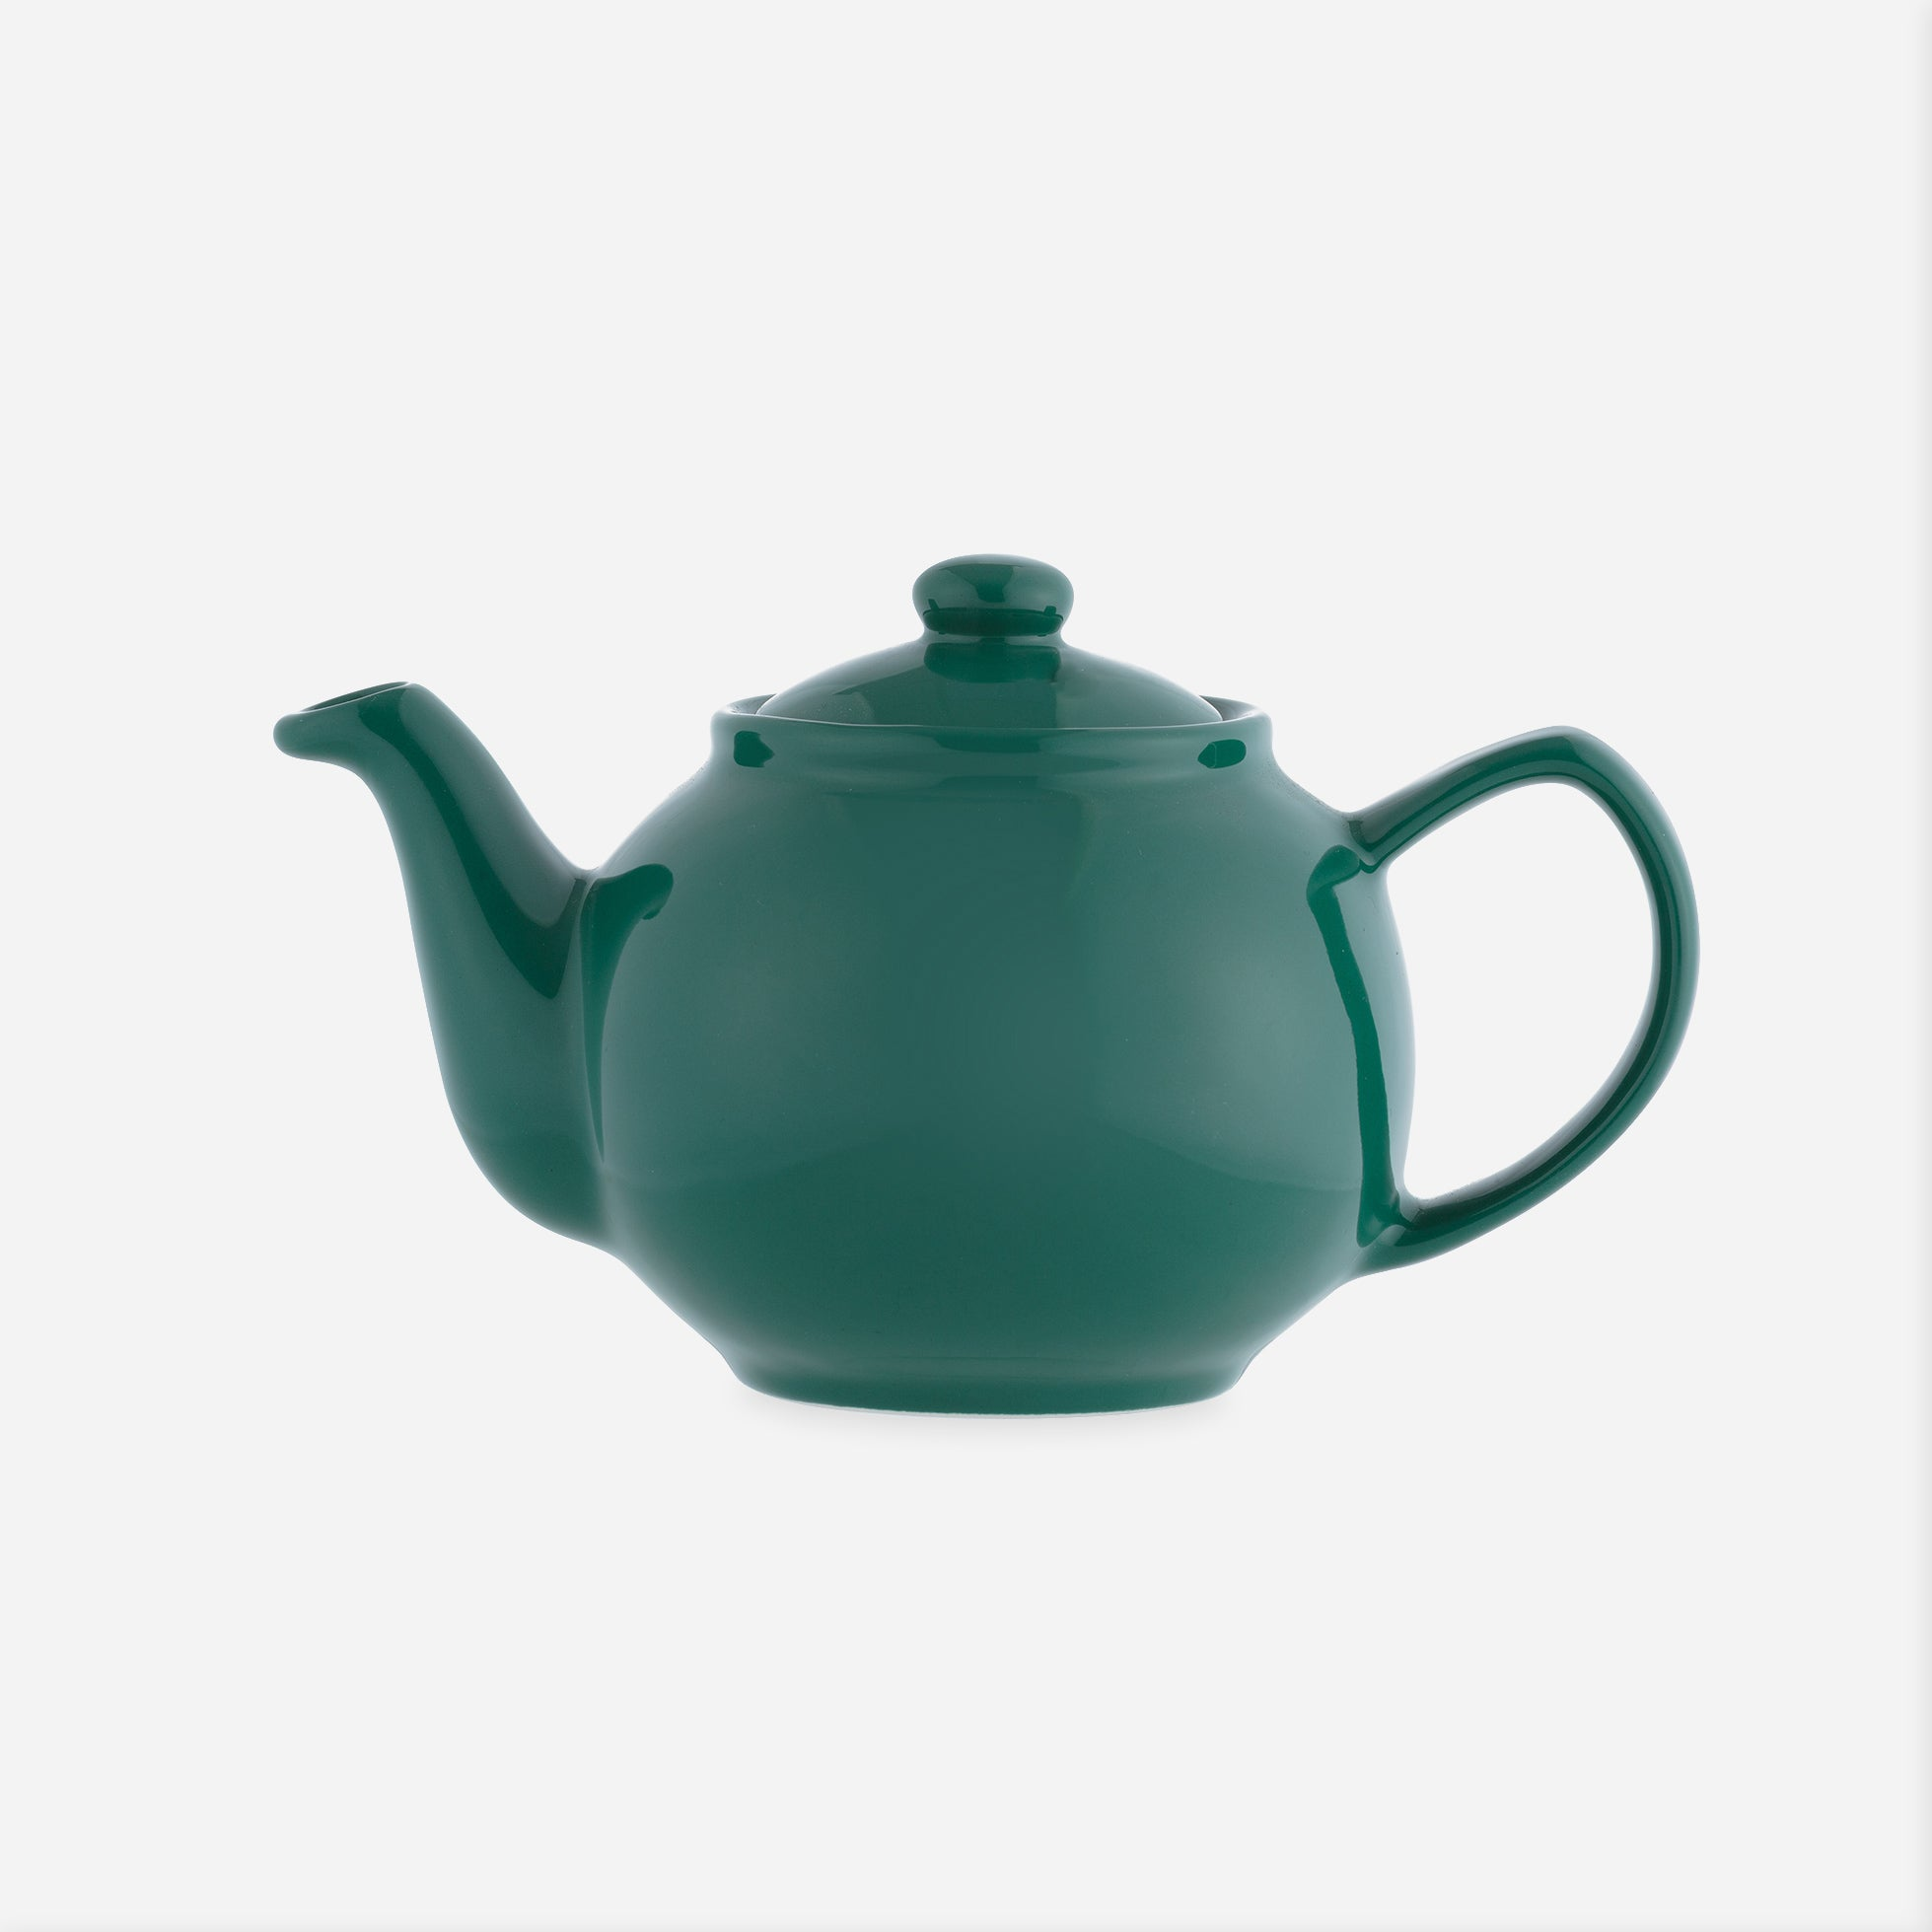 'Brown Betty'-style Teapots